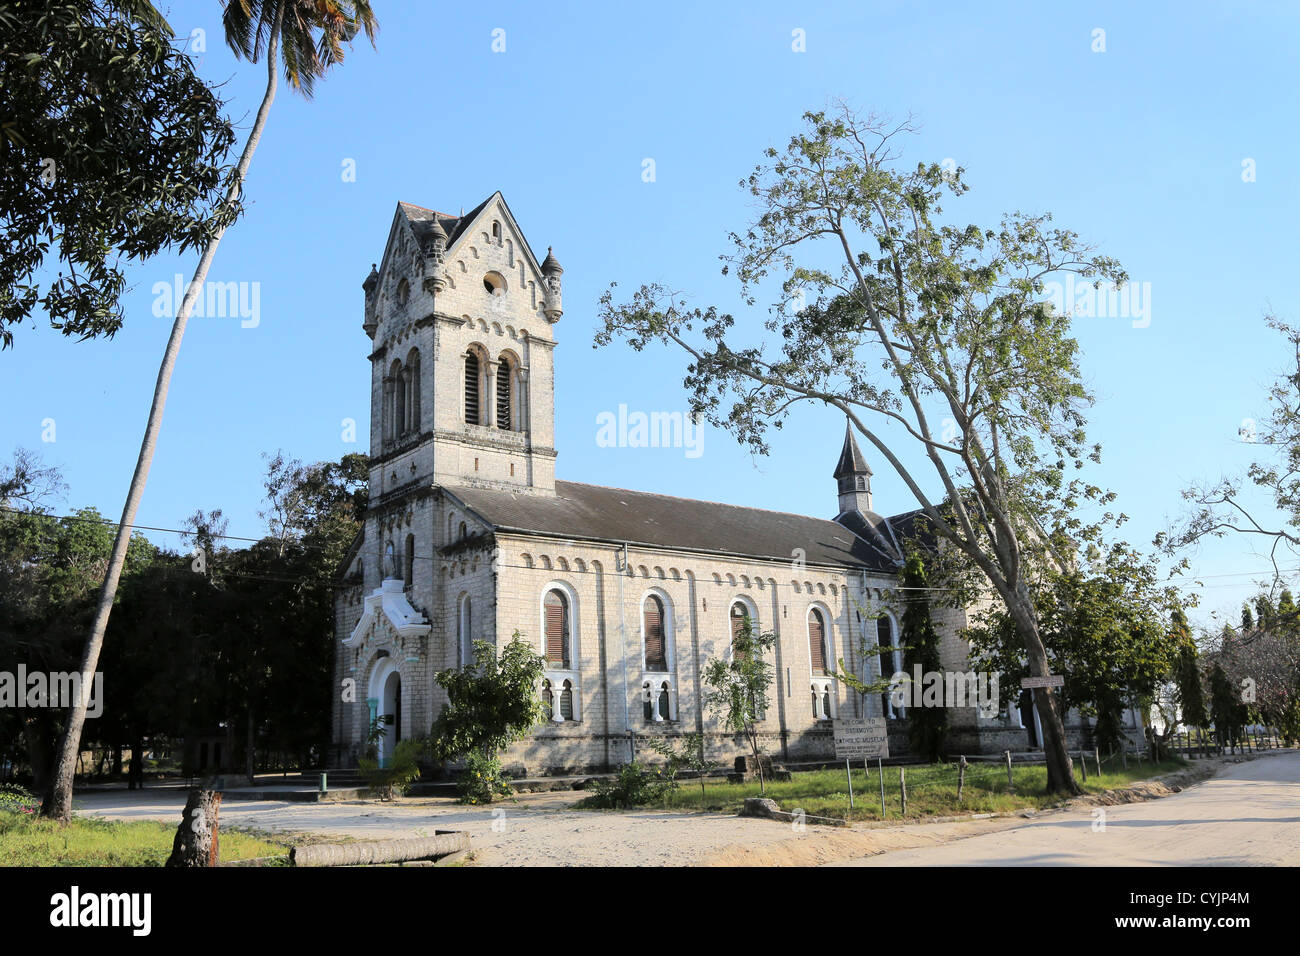 Roman catholic church at the Holy Ghost Mission, built 1914 in Bagamoyo, Tanzania - Stock Image